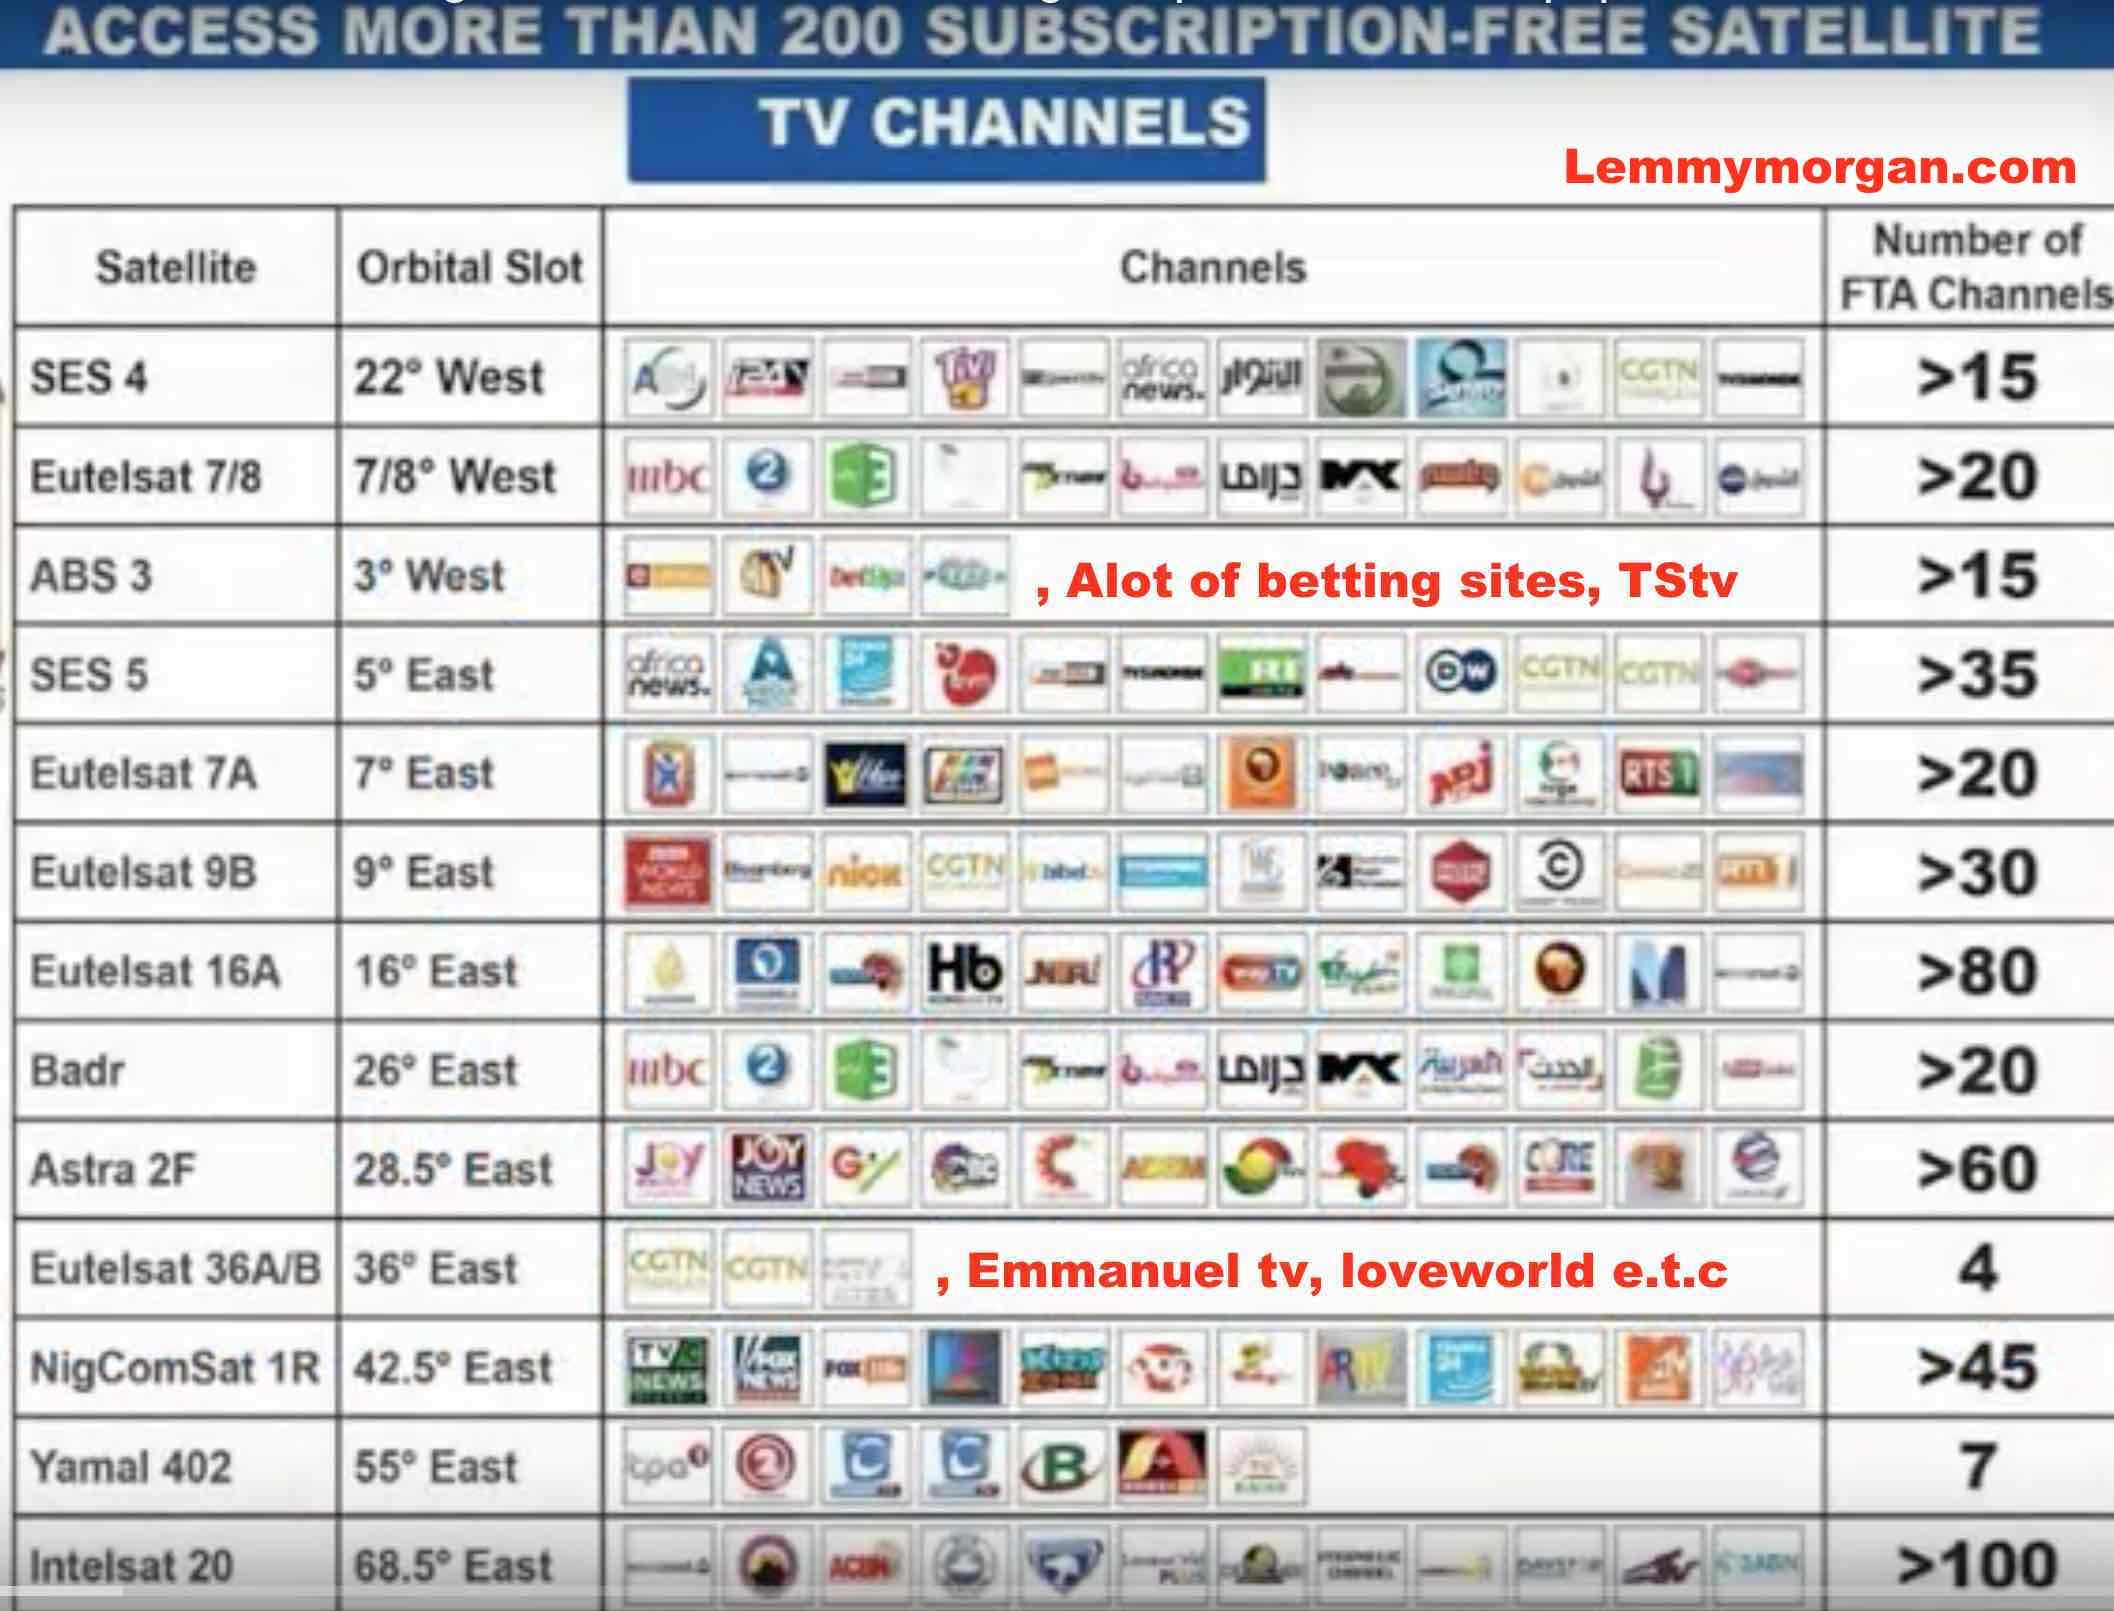 Latest FTA Channels and Frequencies for Tracking them Plus other Tips